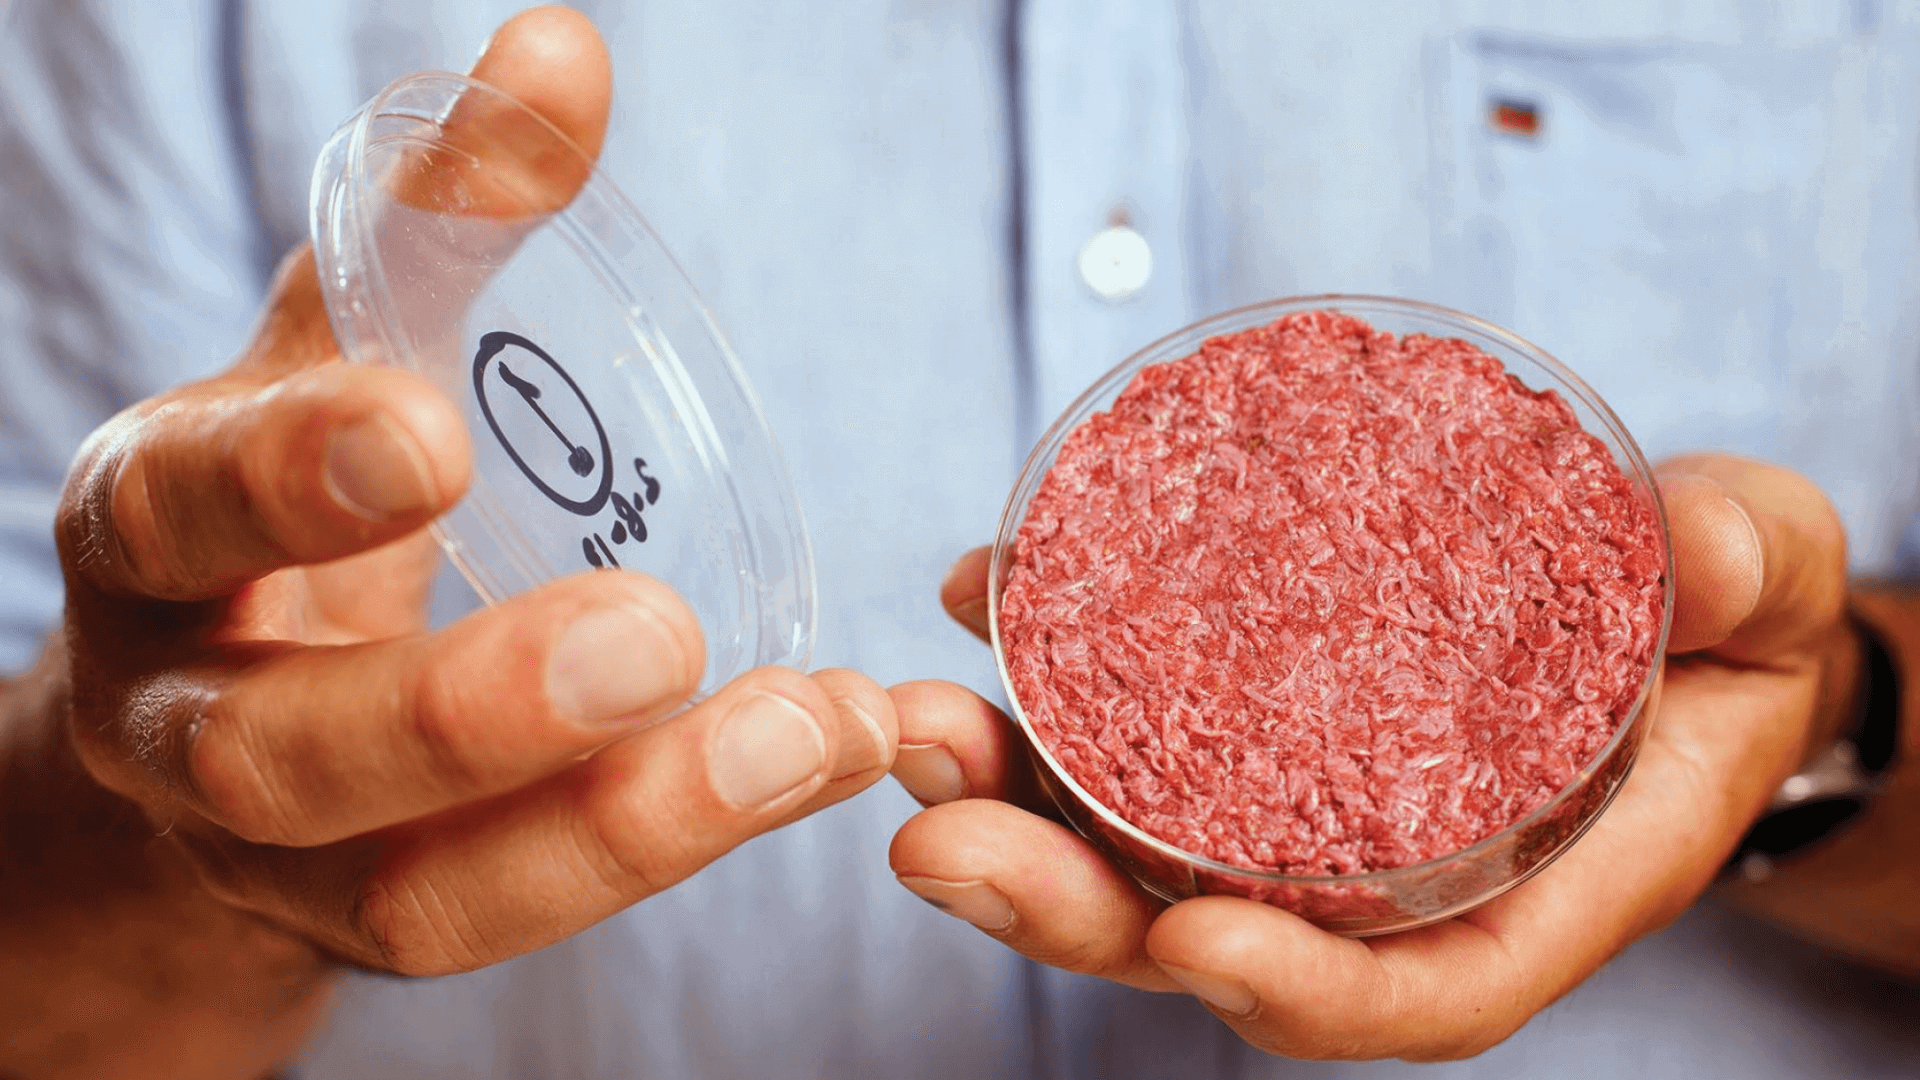 Meat and Livestock Australia Studies the Market for 3D Printed Meat | All3DP